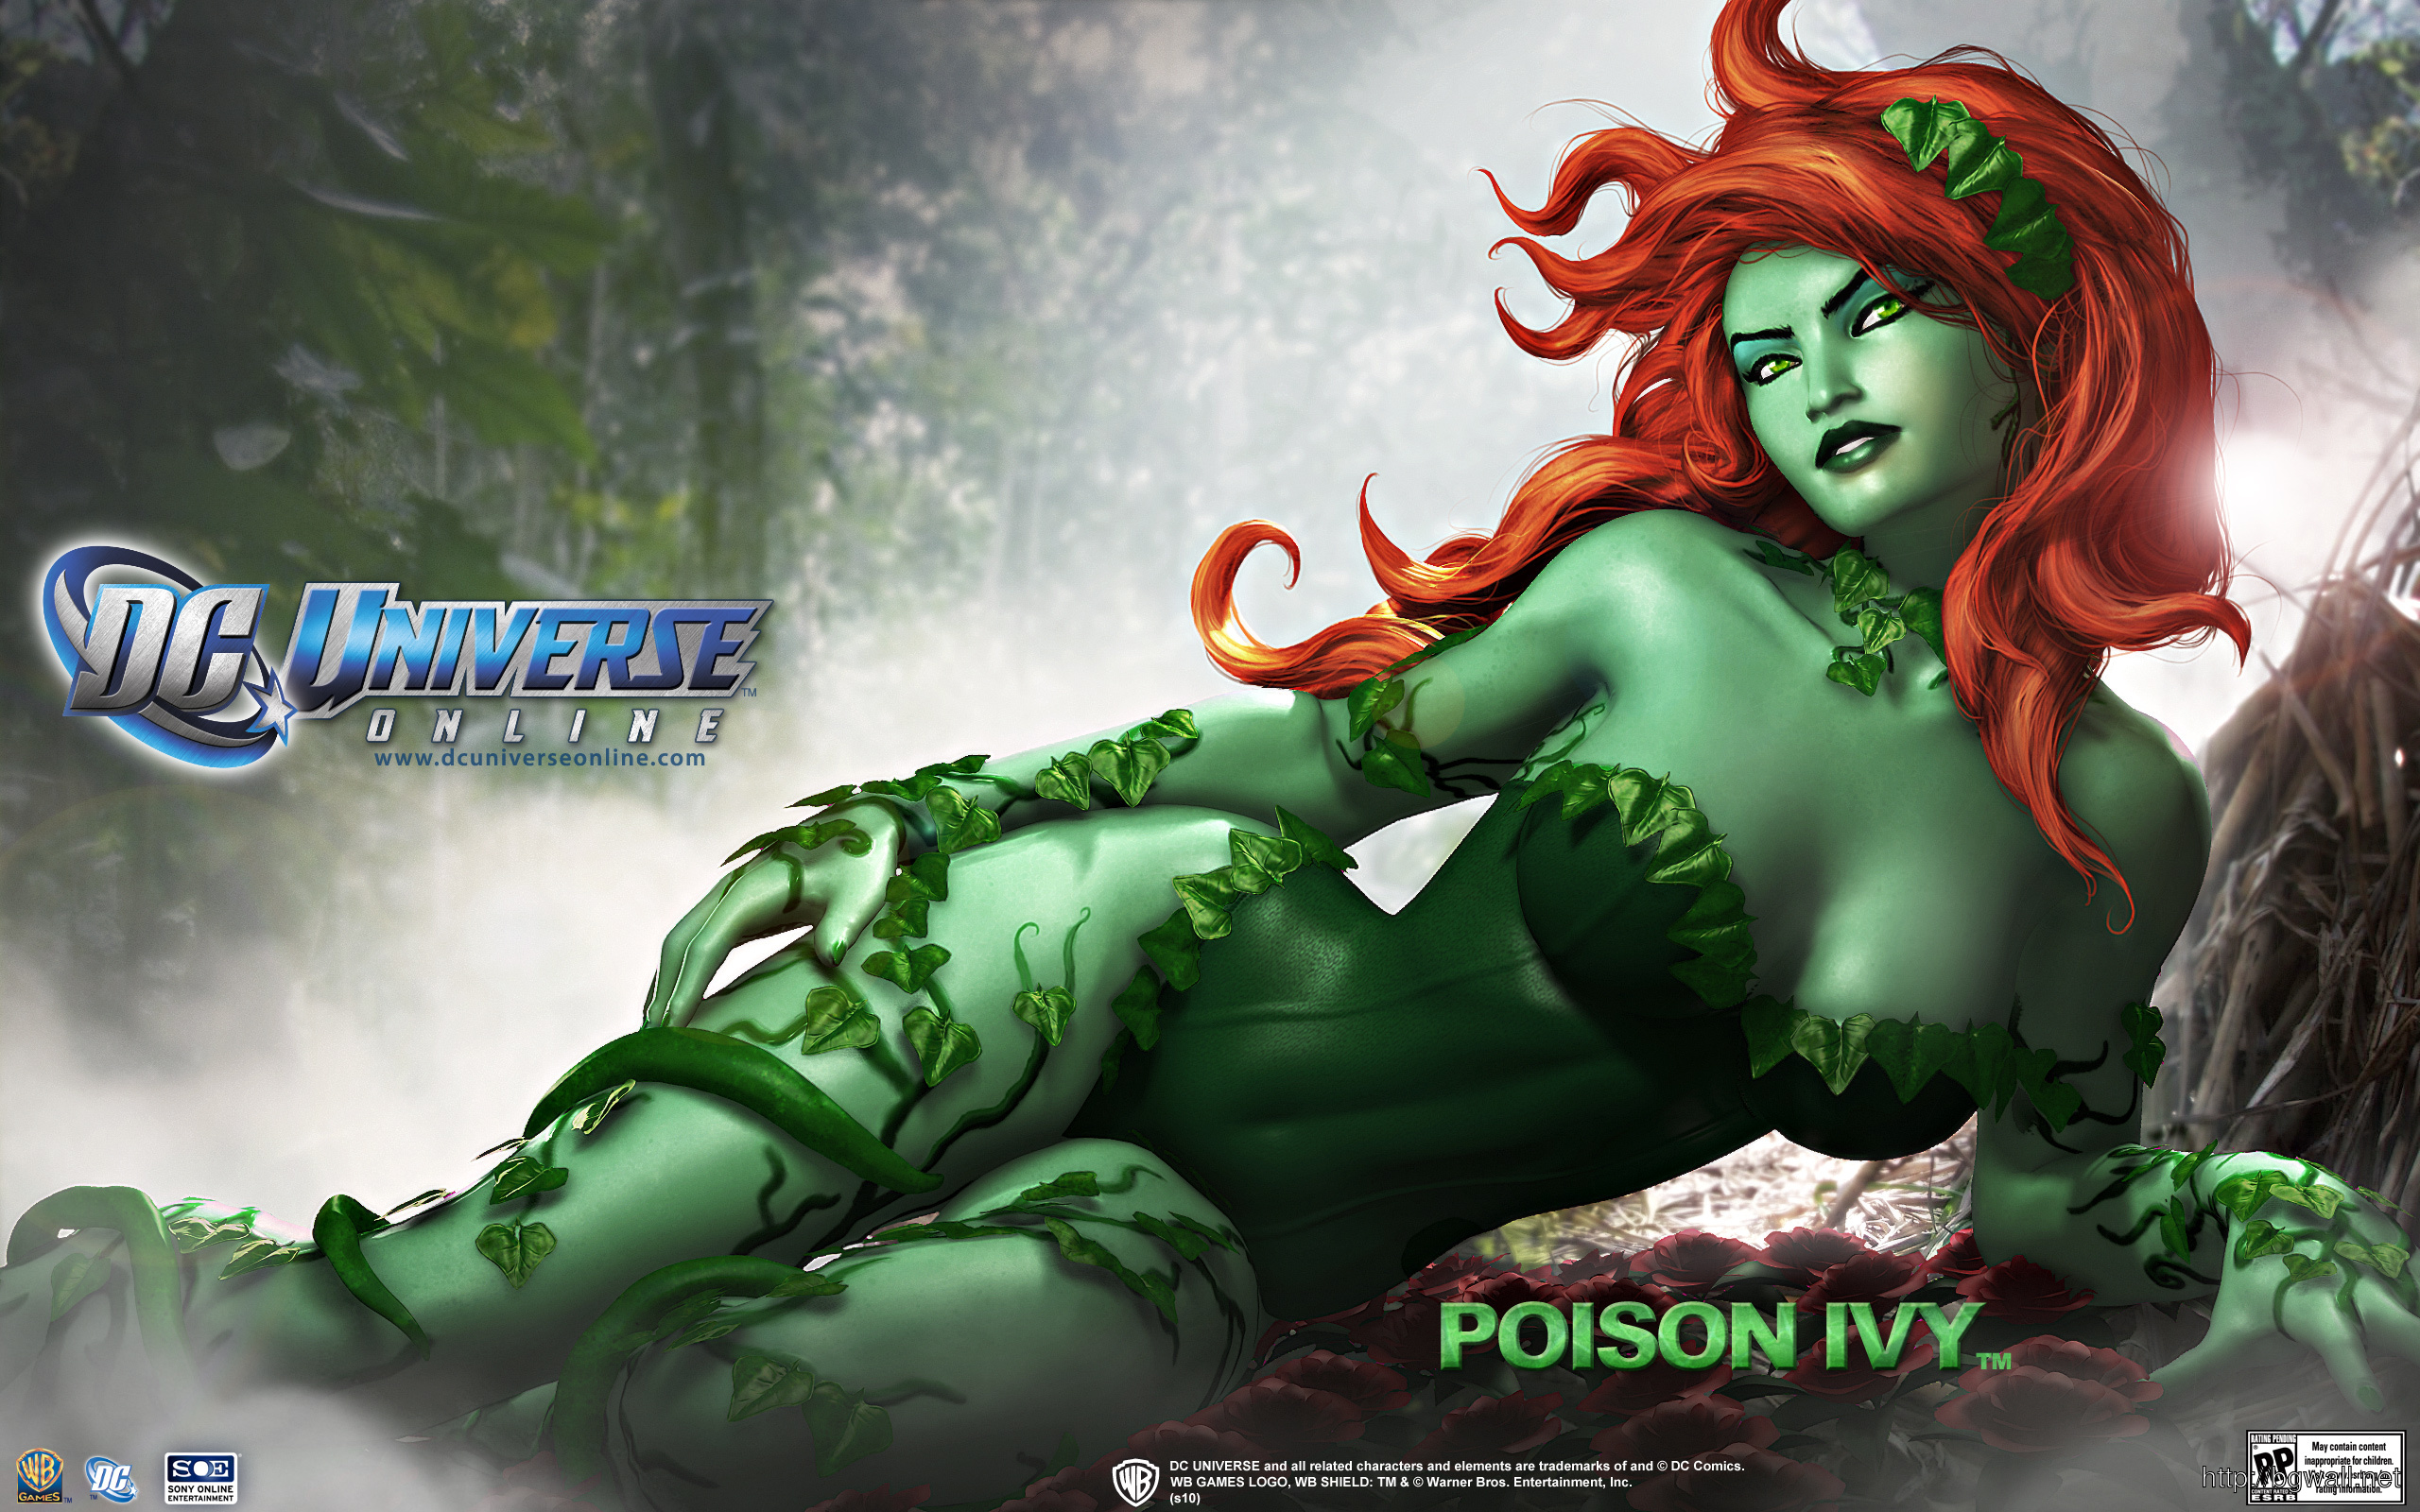 Dc Universe Poison Ivy Hd Wallpapers Full Size